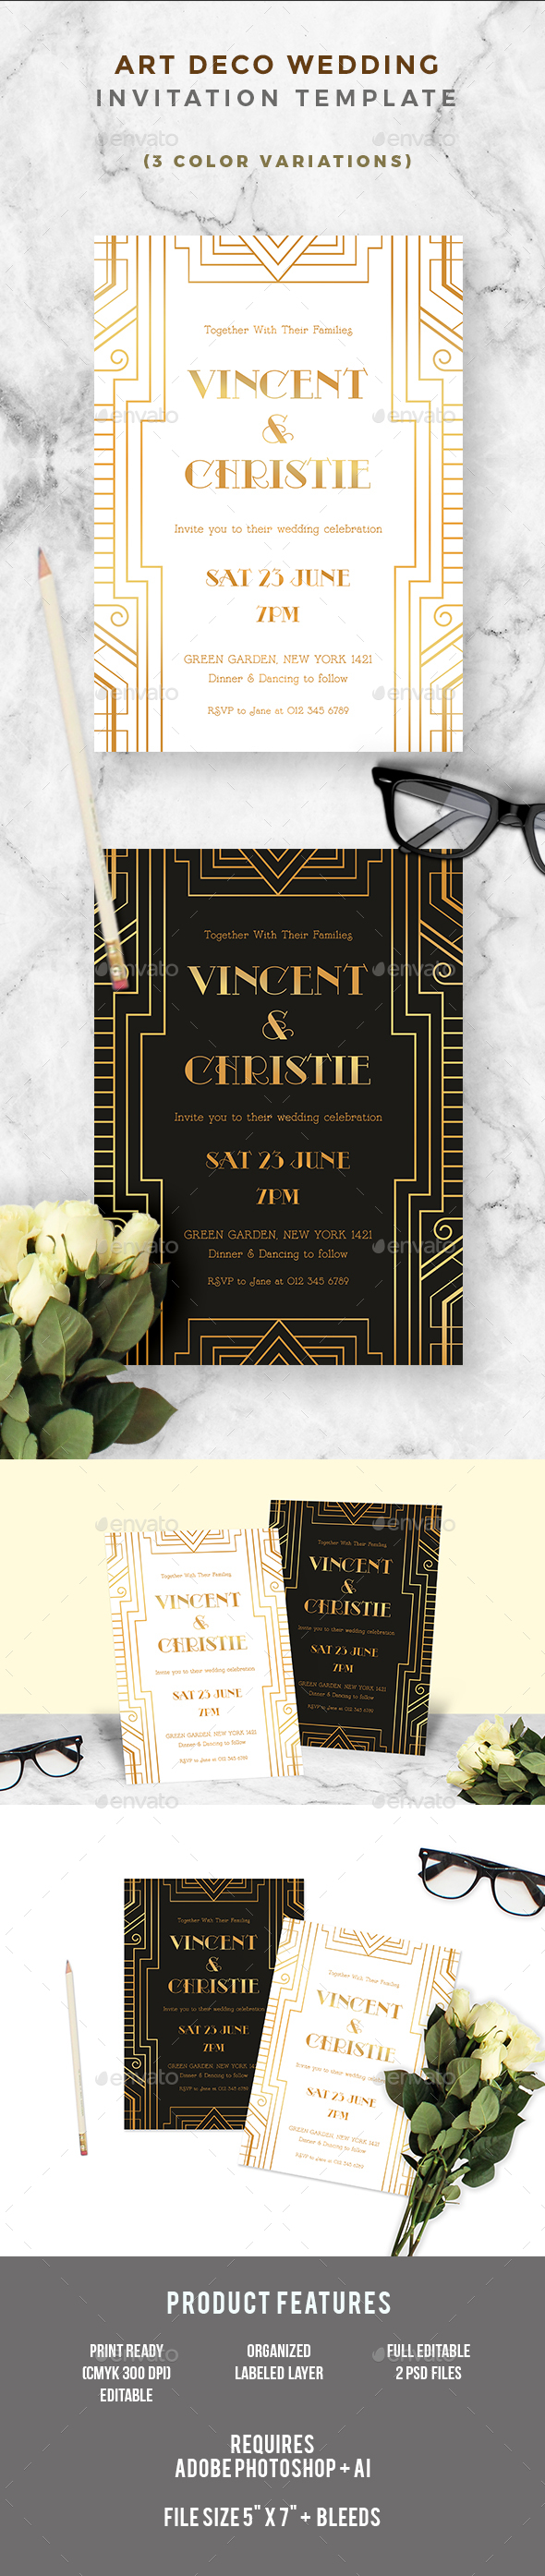 Art Deco Wedding Invitation - Wedding Greeting Cards